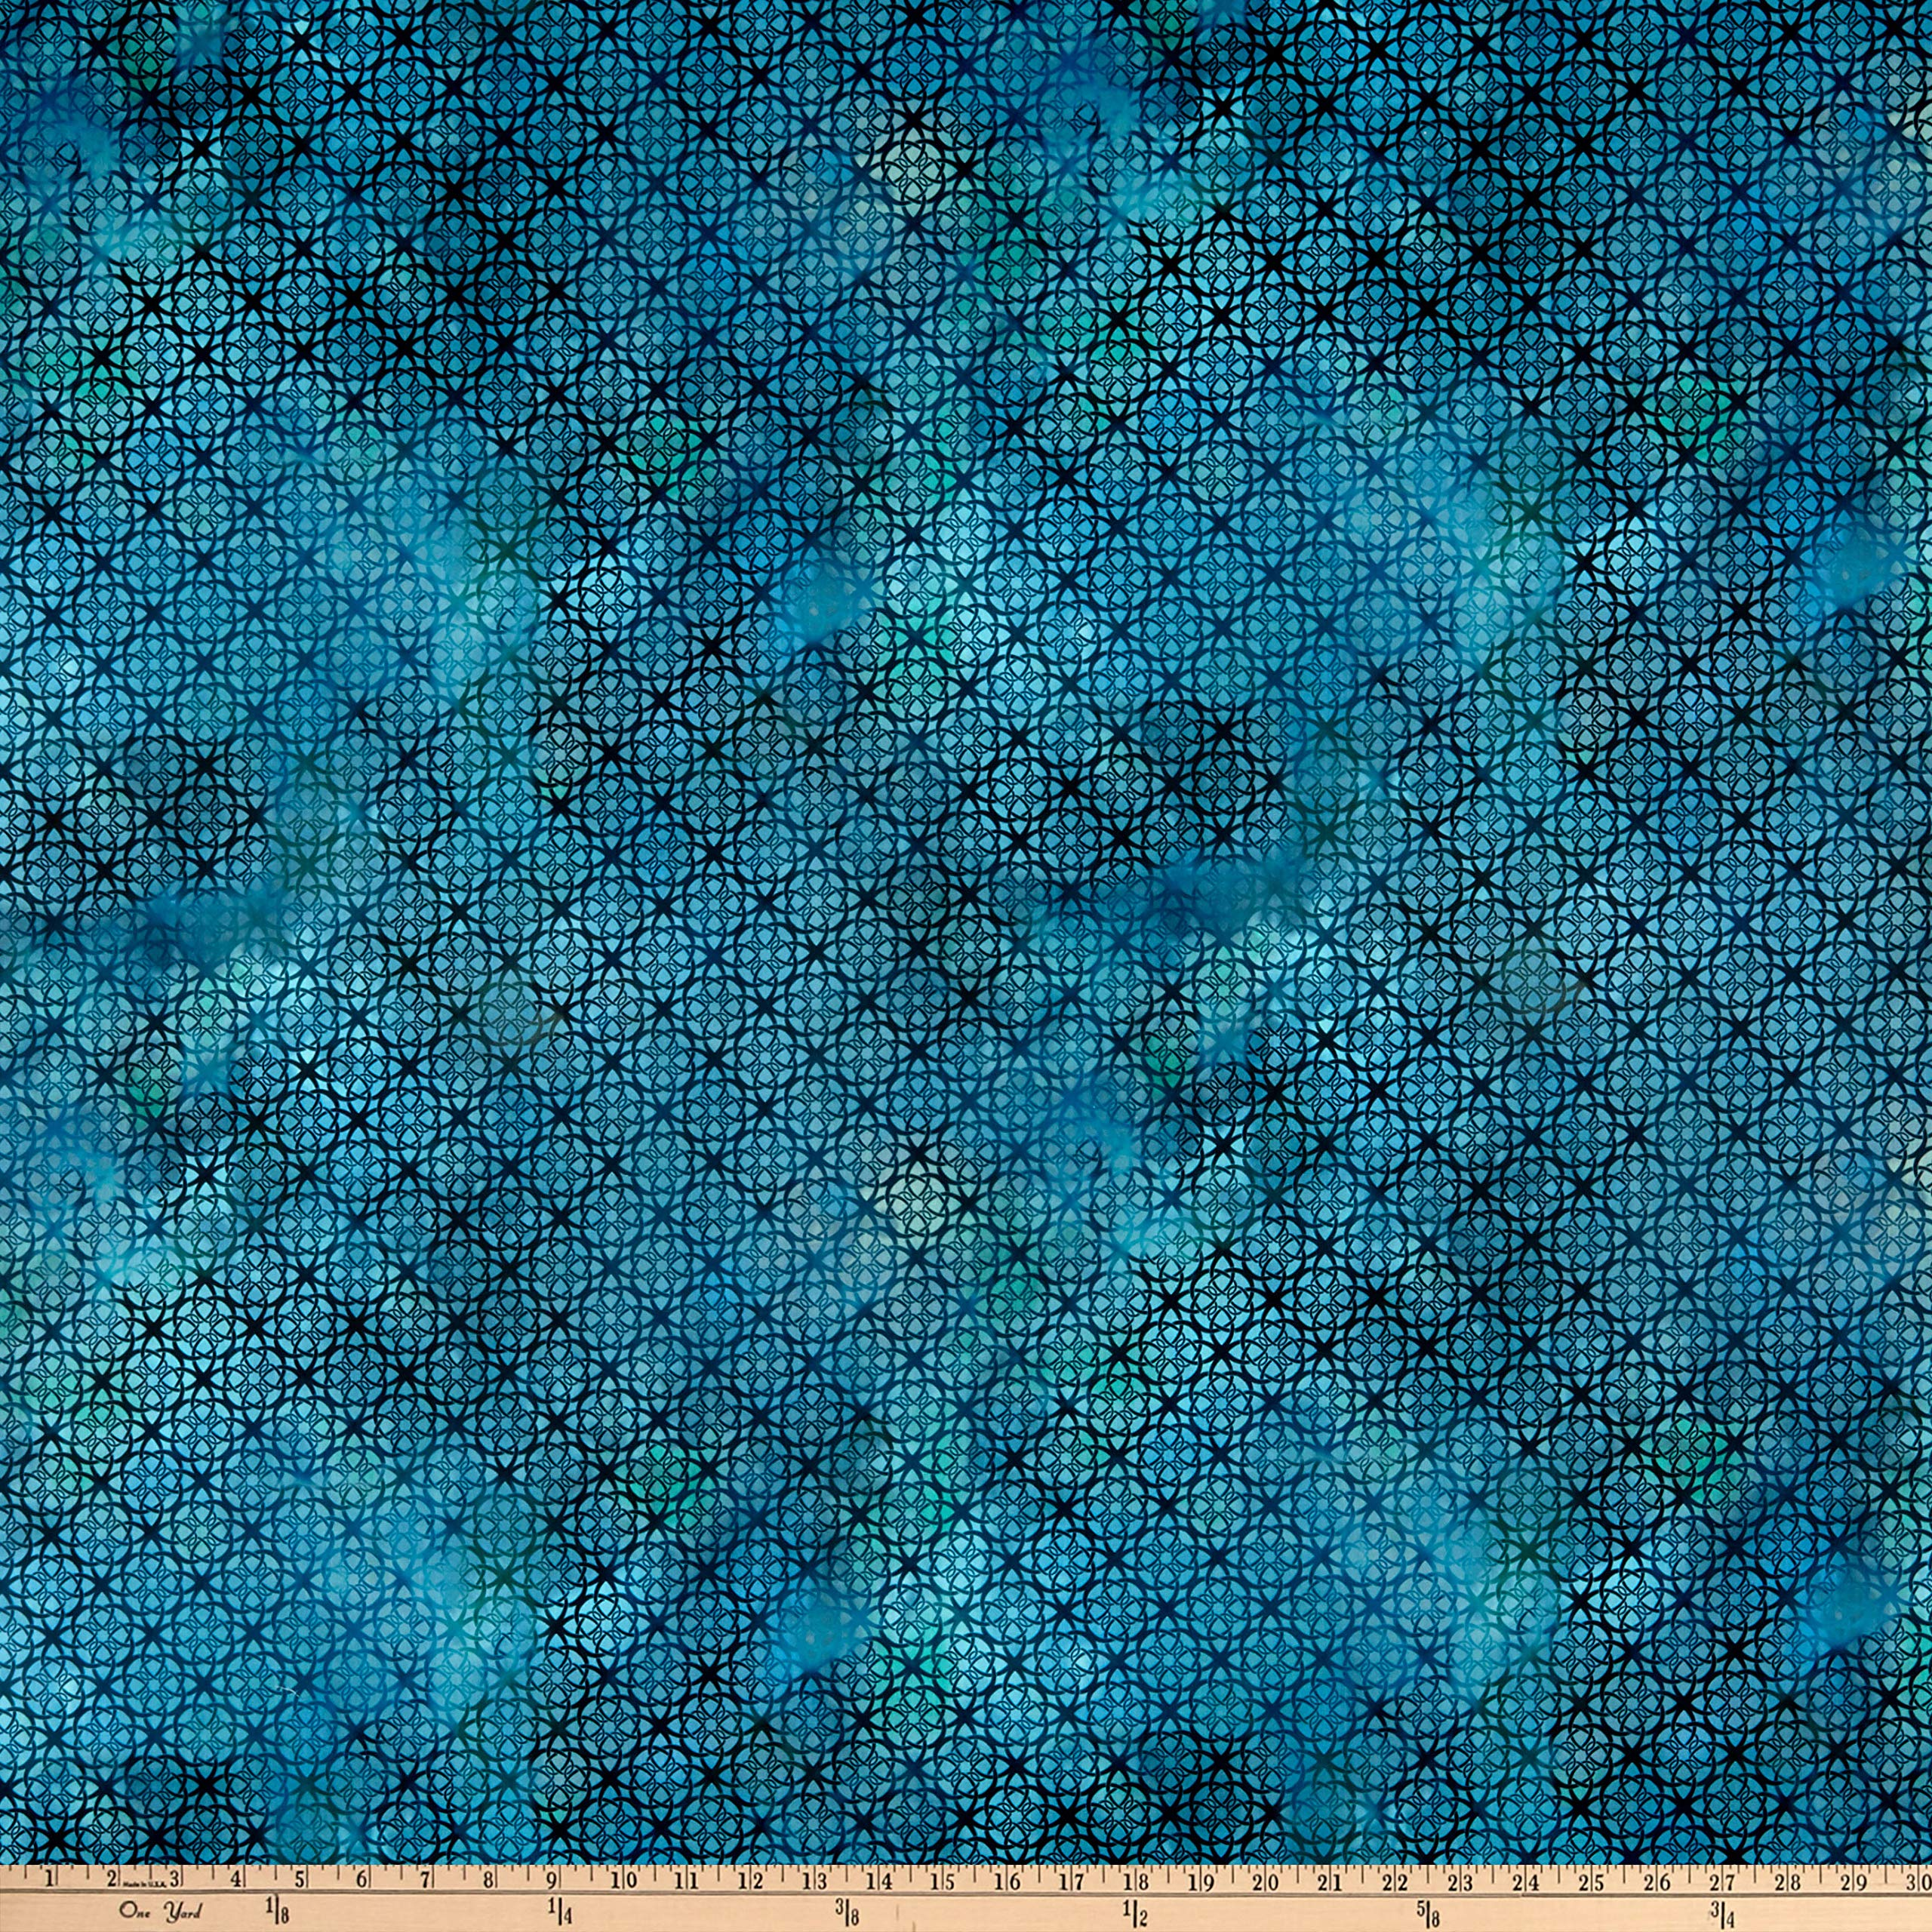 In The Beginning Fabrics In The Beginning s Diaphanous By Jason Yenter Trellis Turquoise, Fabric by the Yard